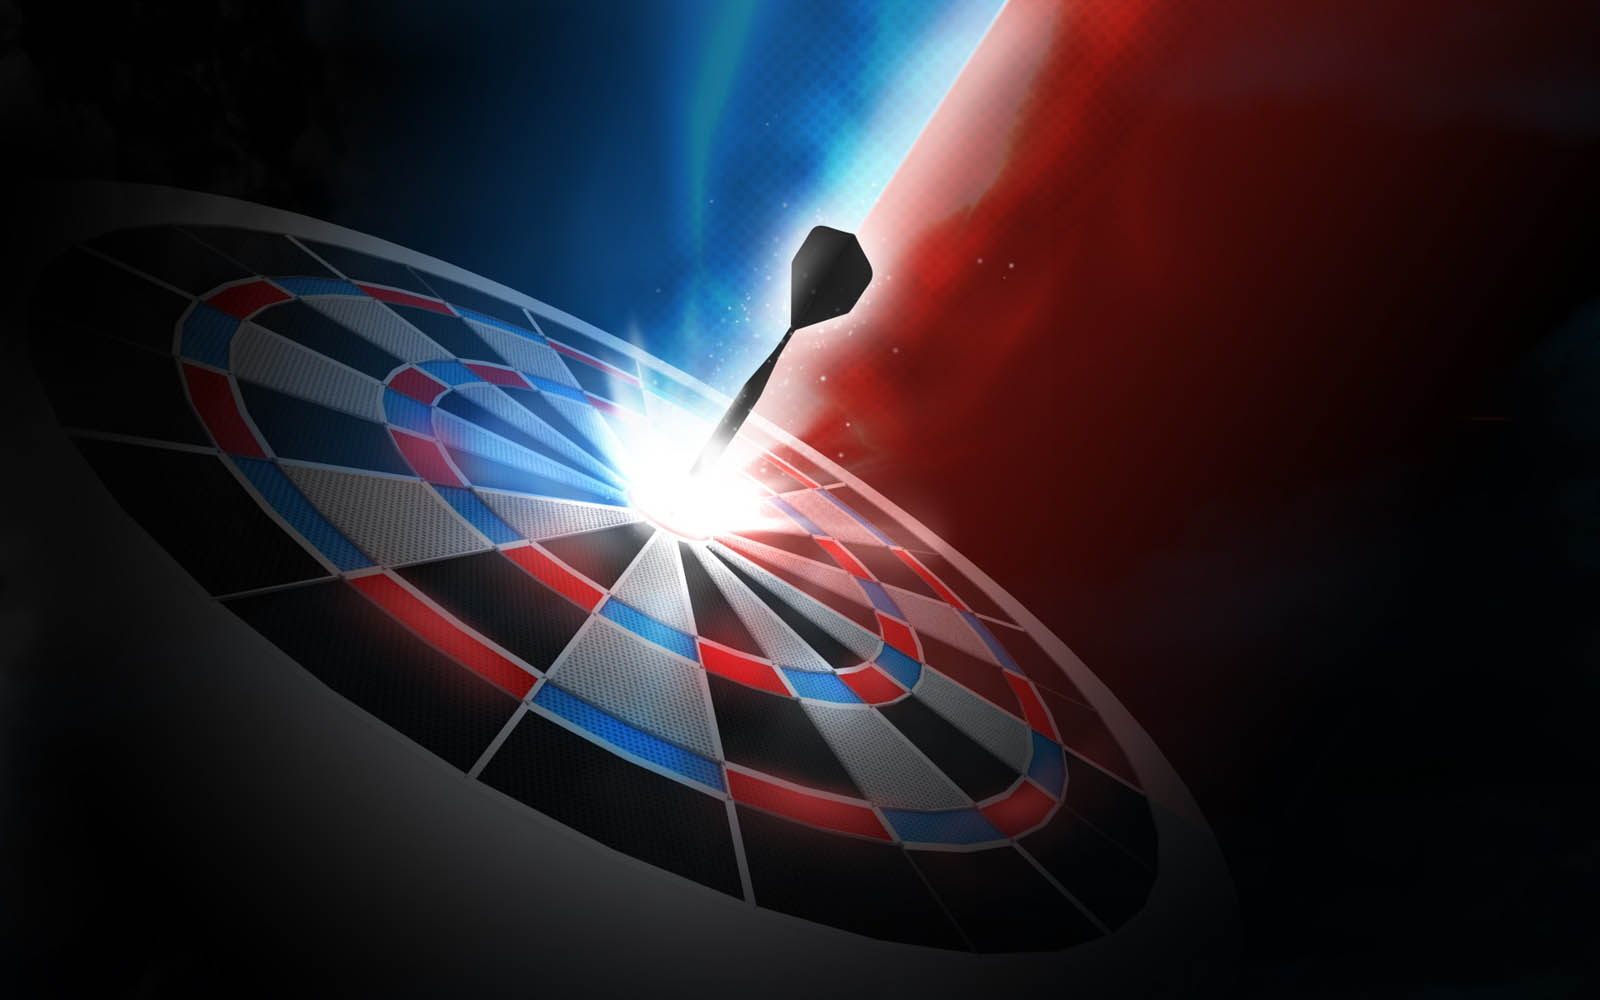 wallpapers: Darts Wallpapers